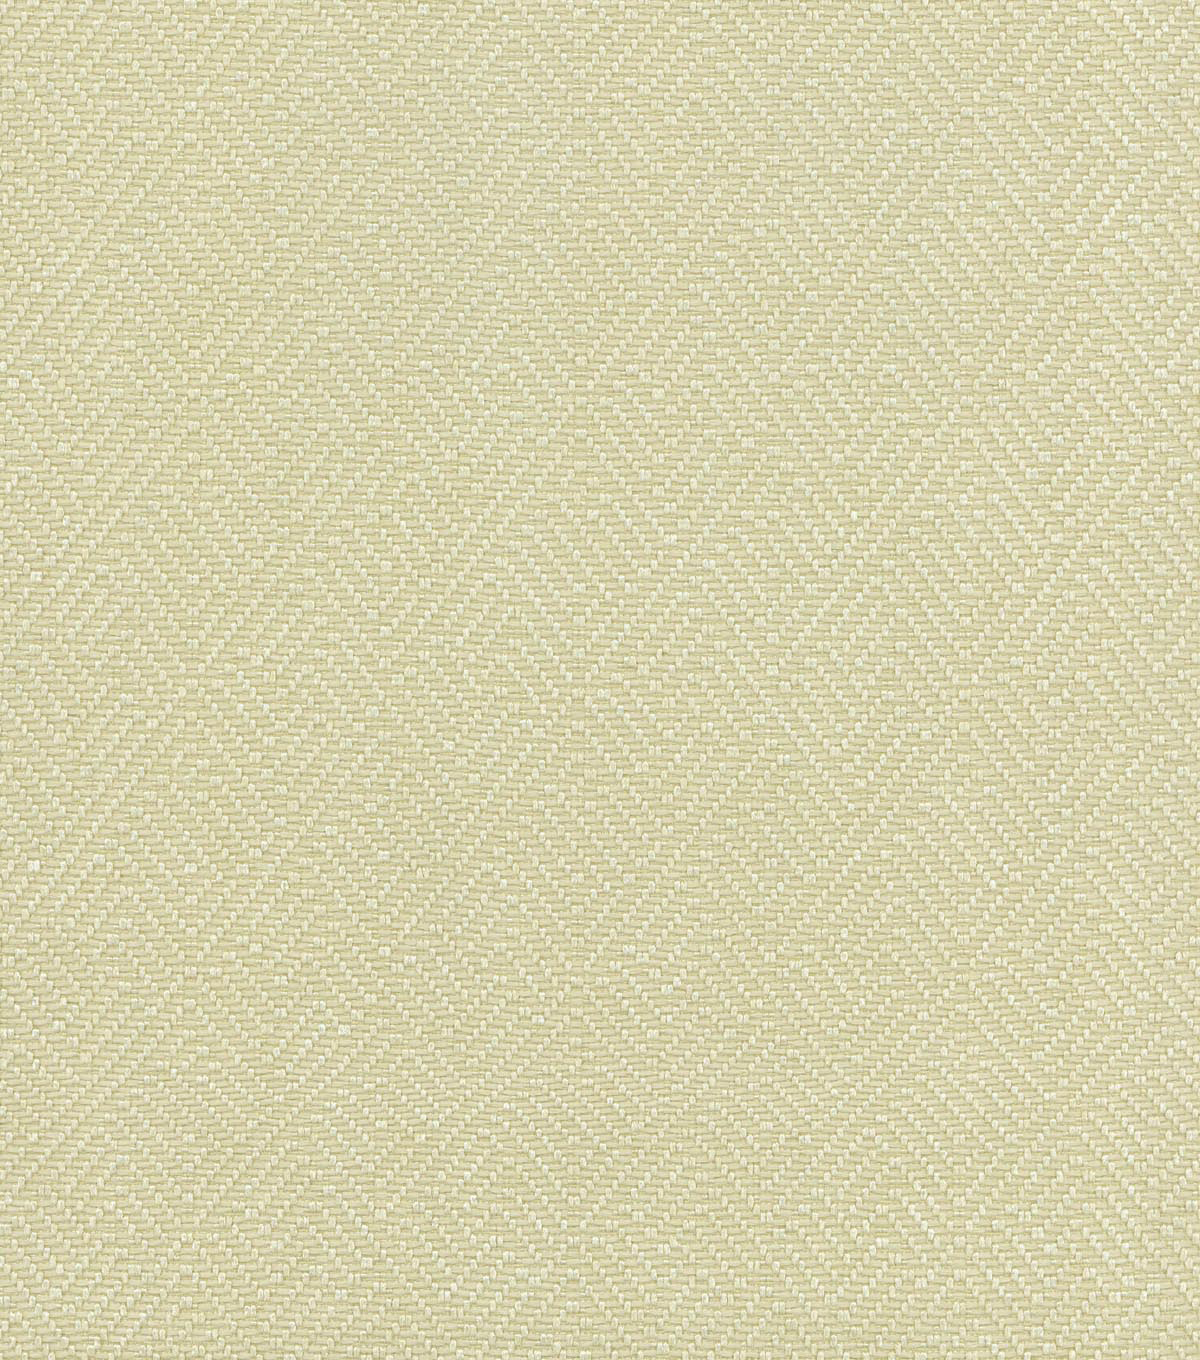 Home Decor 8\u0022x8\u0022 Swatch Fabric-PK Lifestyles Basketry Lemongrass